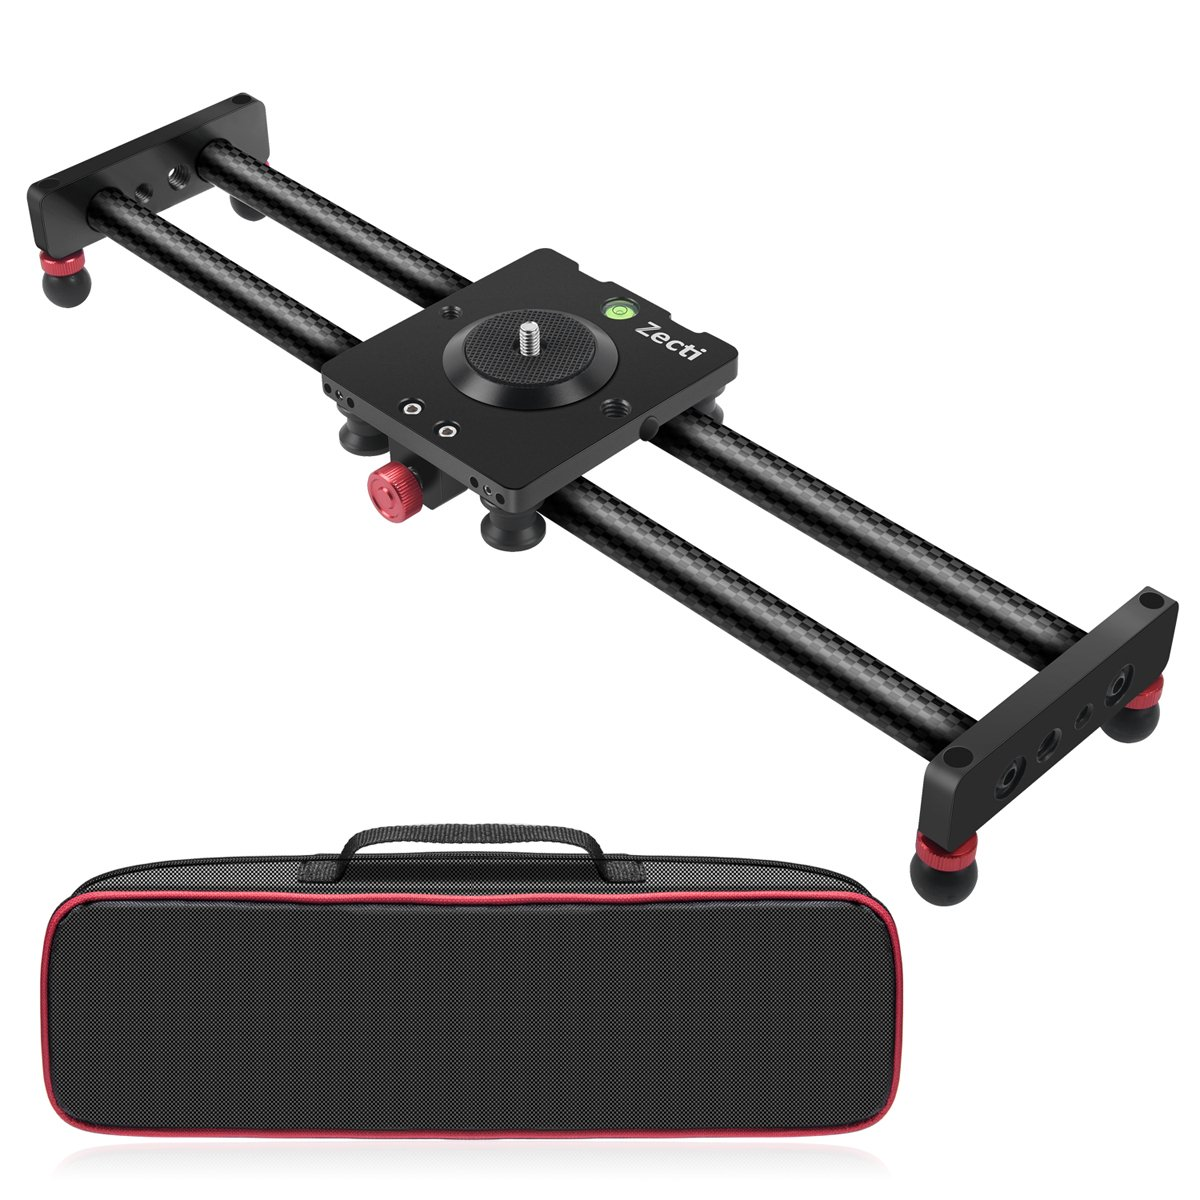 Zecti 15.7'' Adjustable Carbon Fiber Camera Slider Track Dolly Sliders Rail System and Video Shot Follow Focus Shot Panoramic Shooting by Zecti